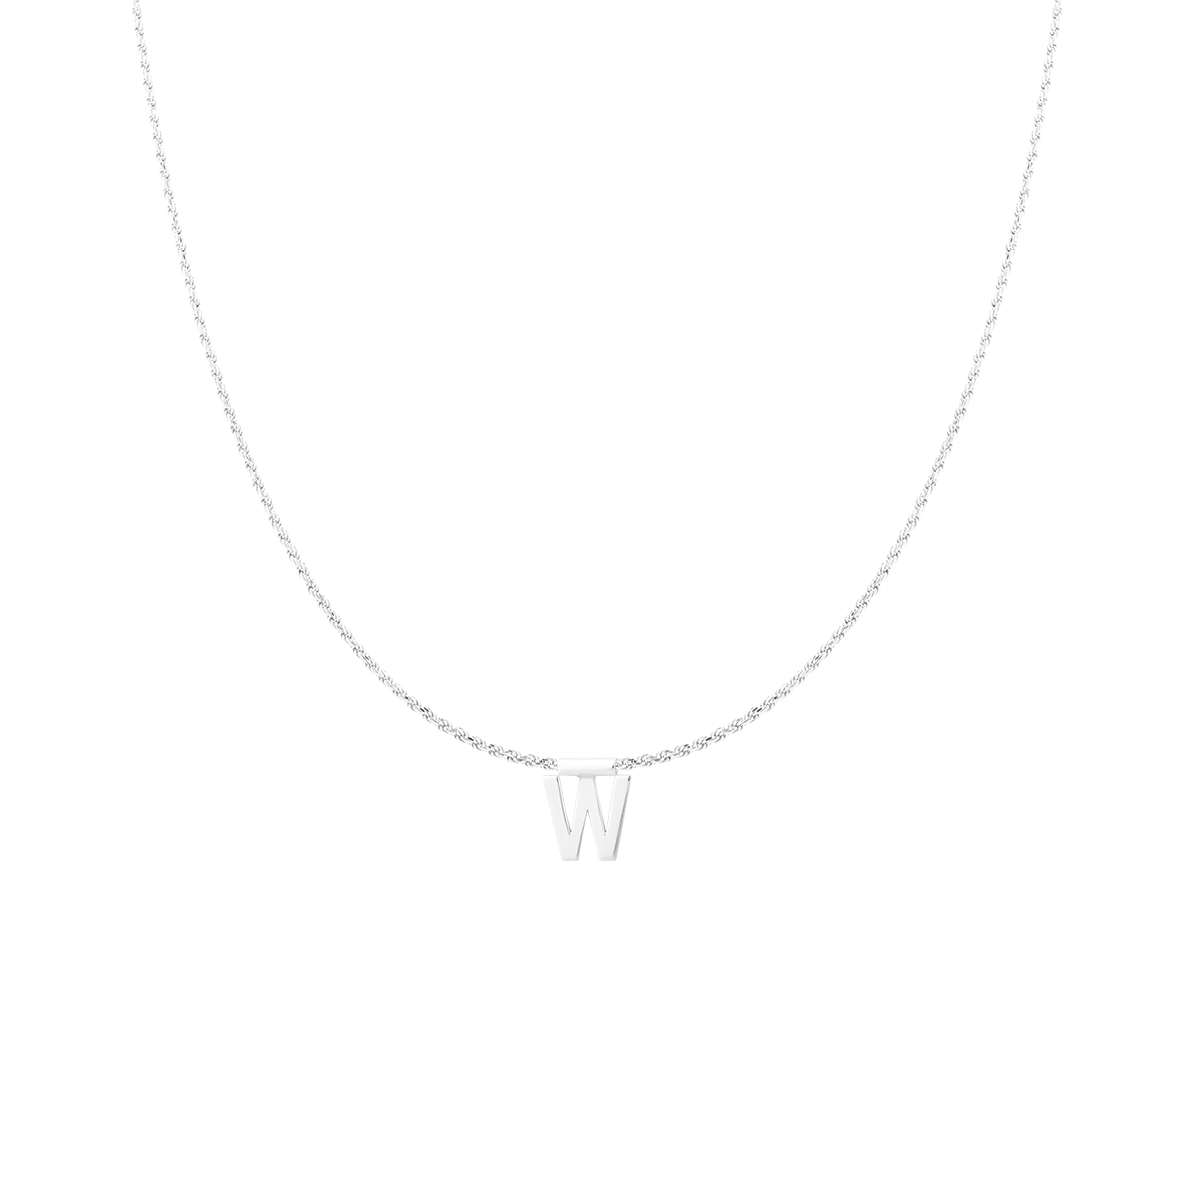 Ruby Rope Letter Necklace zilver W